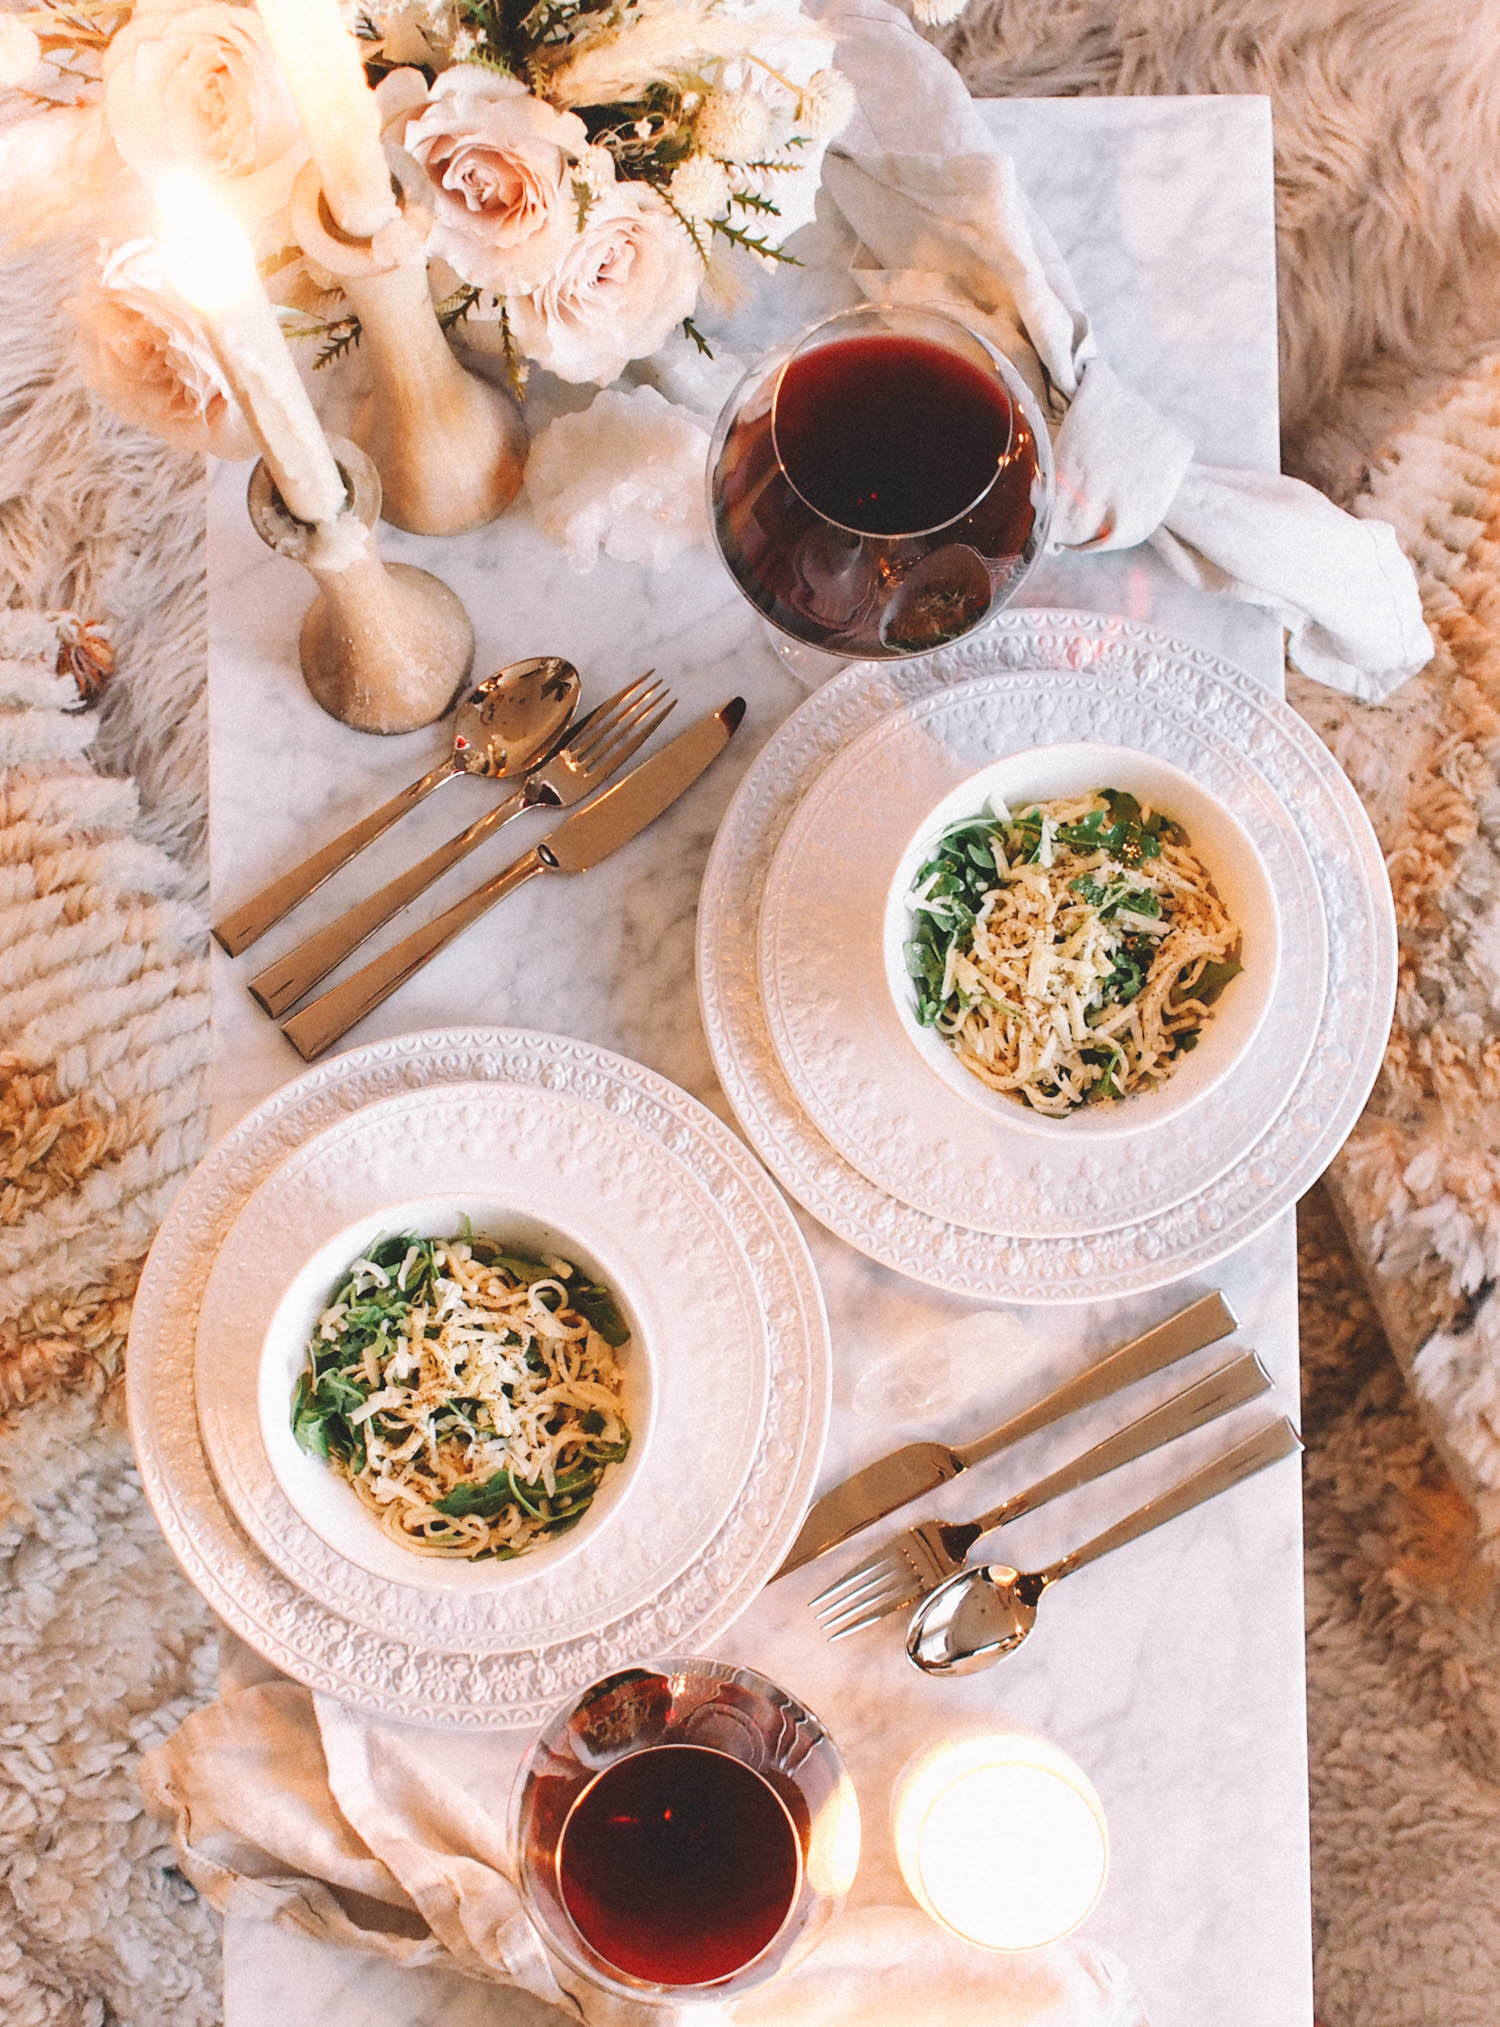 Date night dinner for 2 | A Fabulous Fete